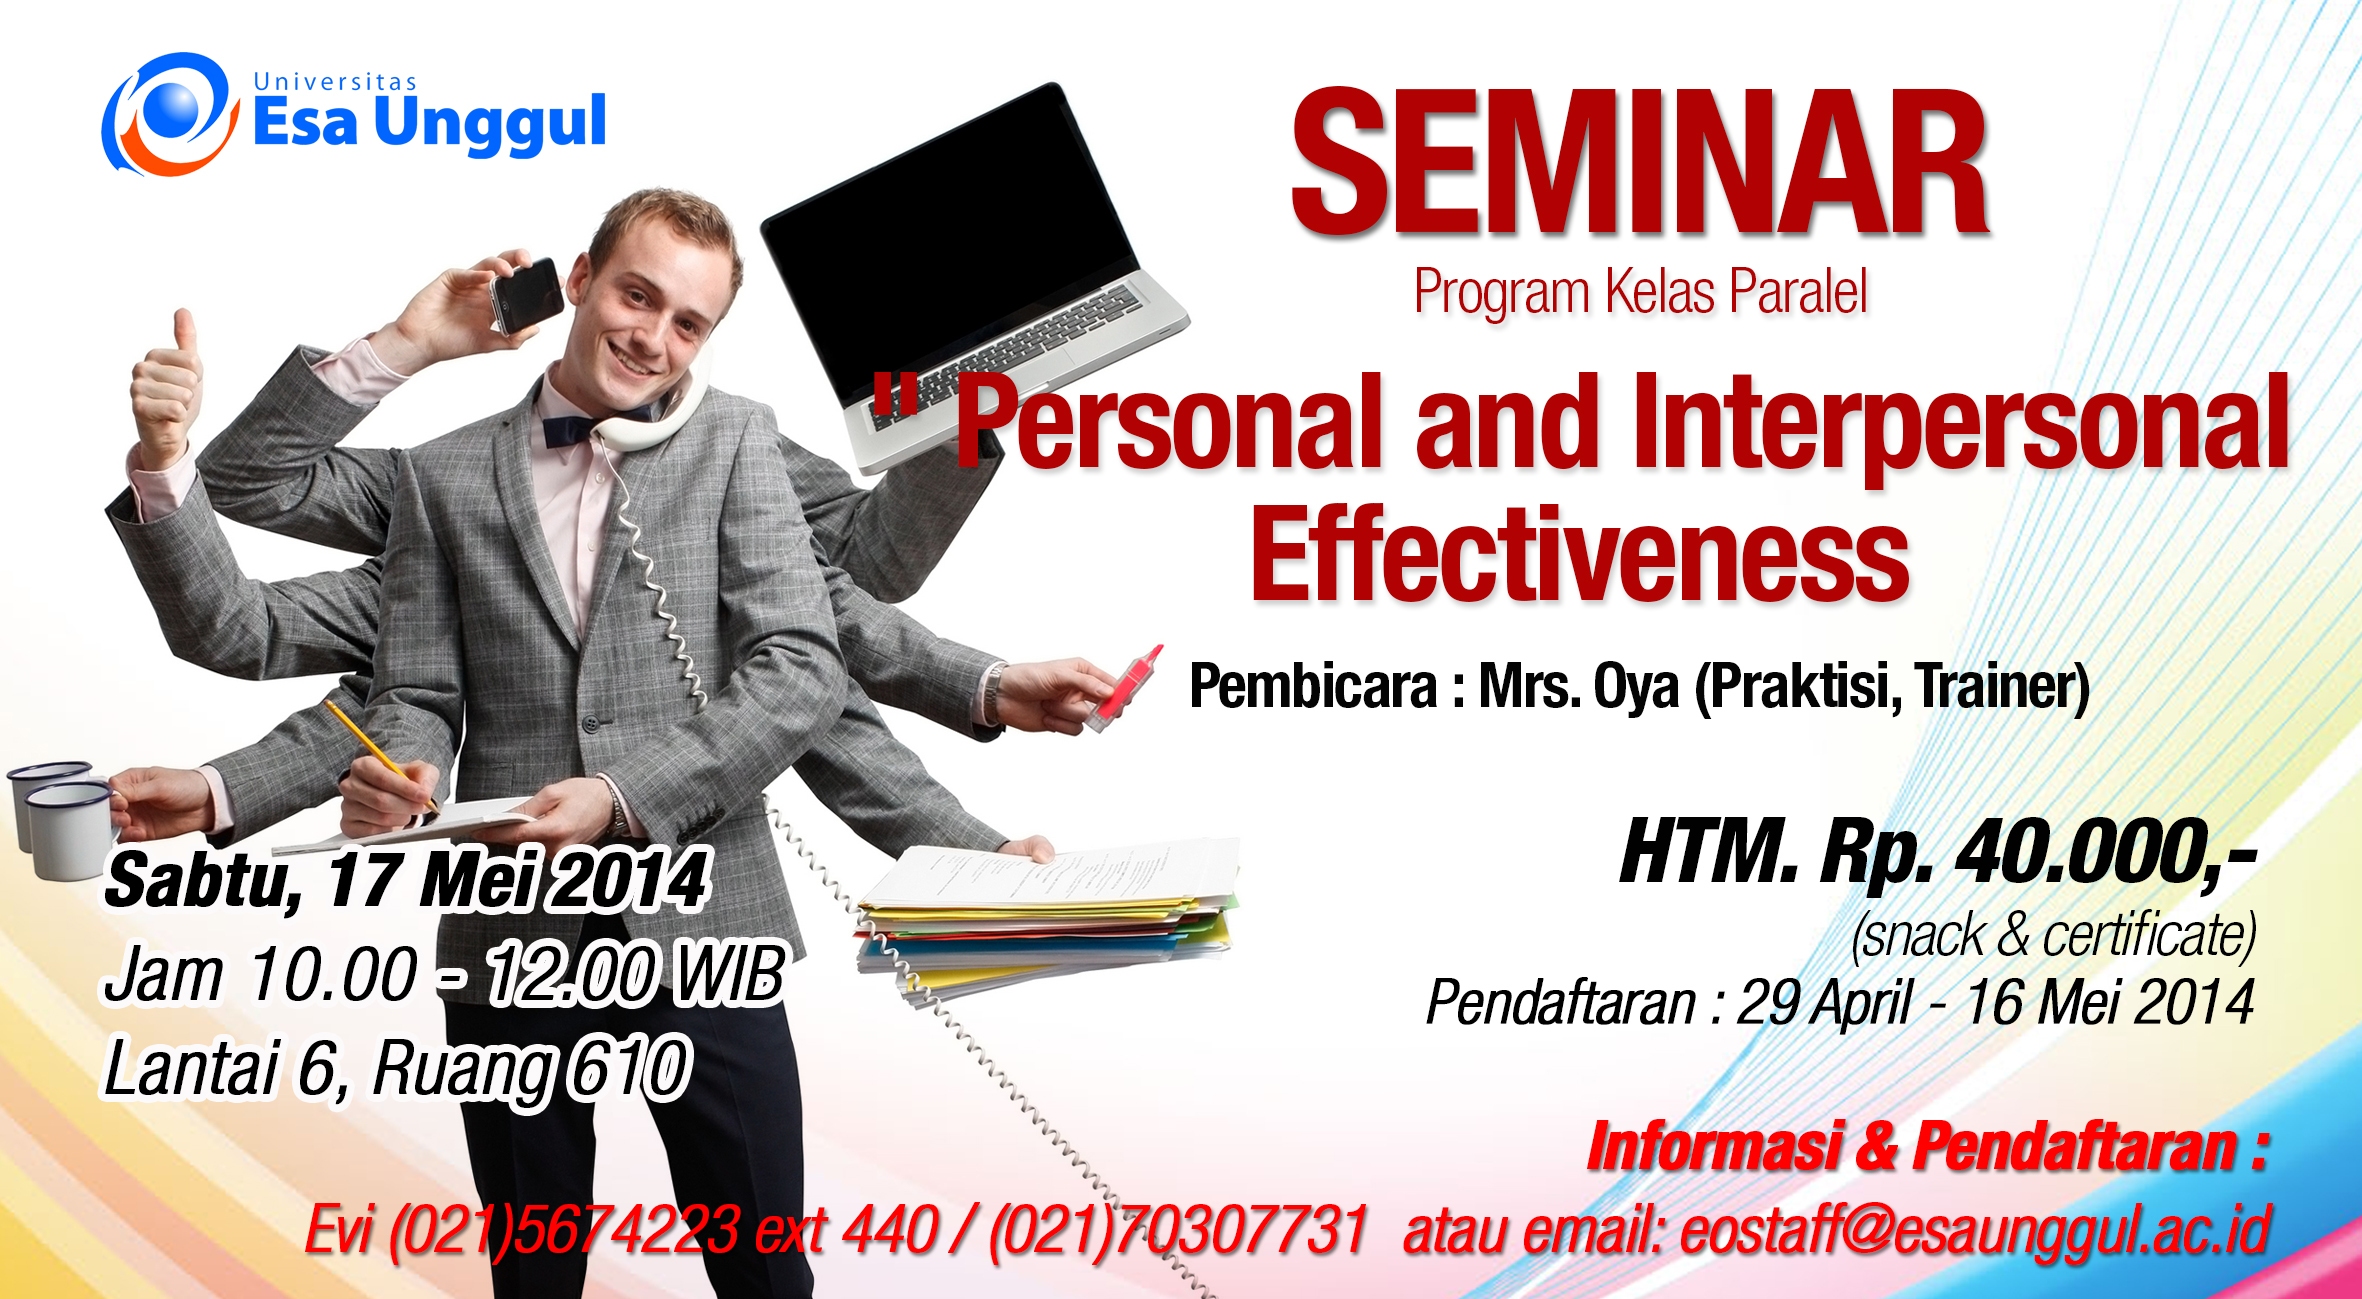 "Universitas Esa Unggul menyelenggarakan Seminar "" Personal and Interpersonal Effectiveness "" pada Sabtu, 17 Mei 2014"